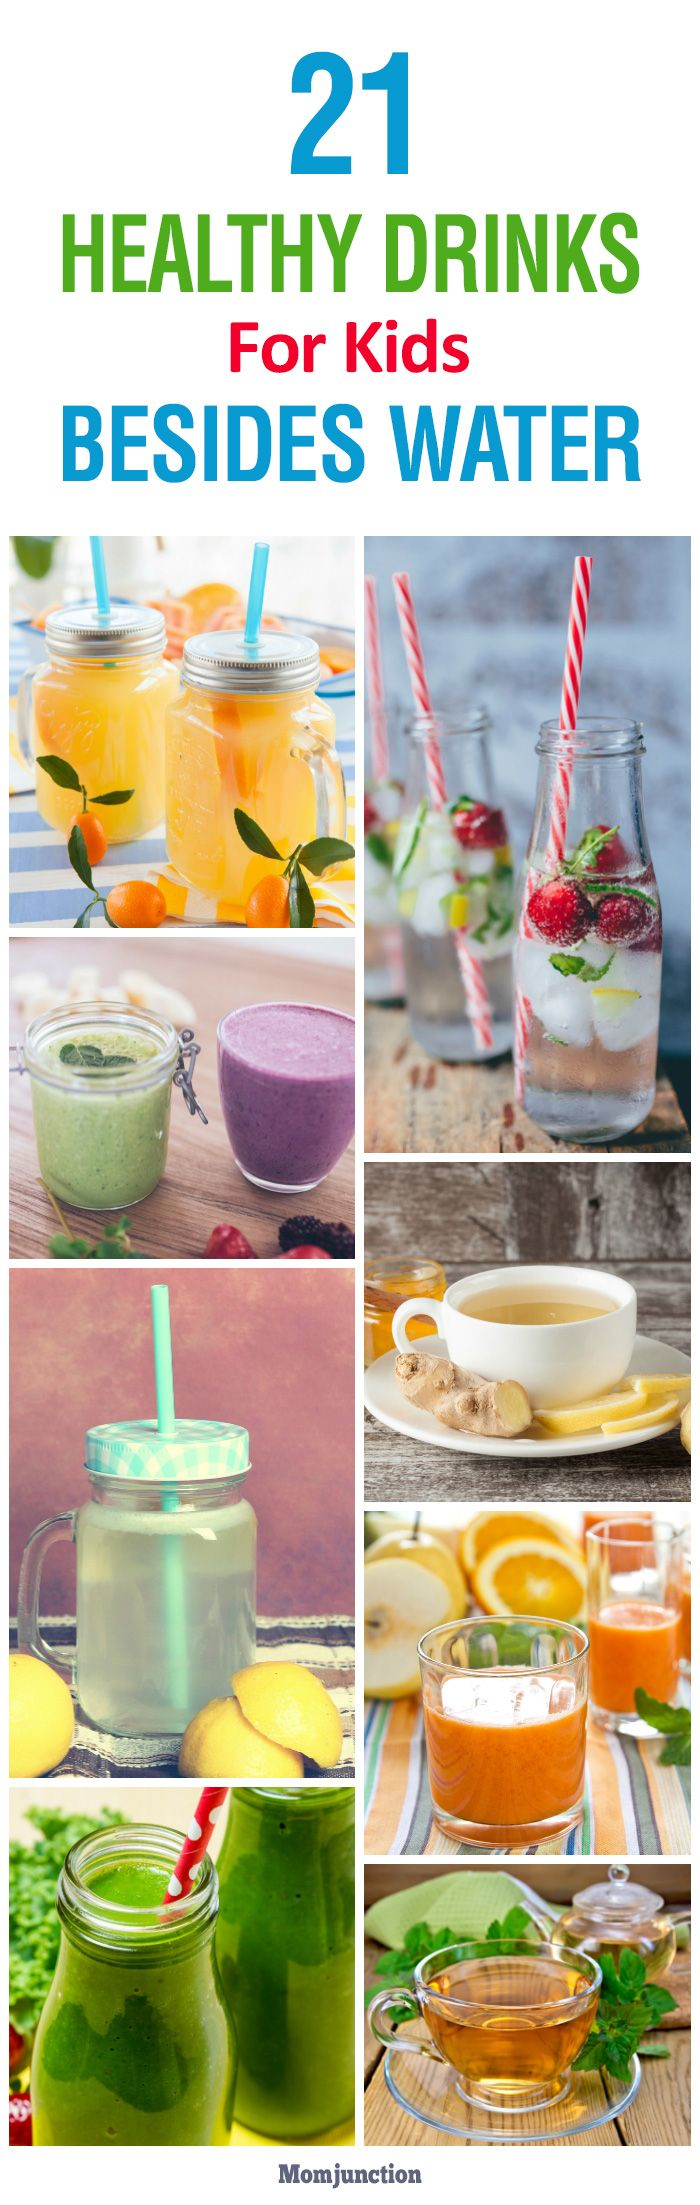 Figuring out most healthy drinks for kids was never so easy. Read more about the best nutritional drinks and easy to make homemade beverages for your child.